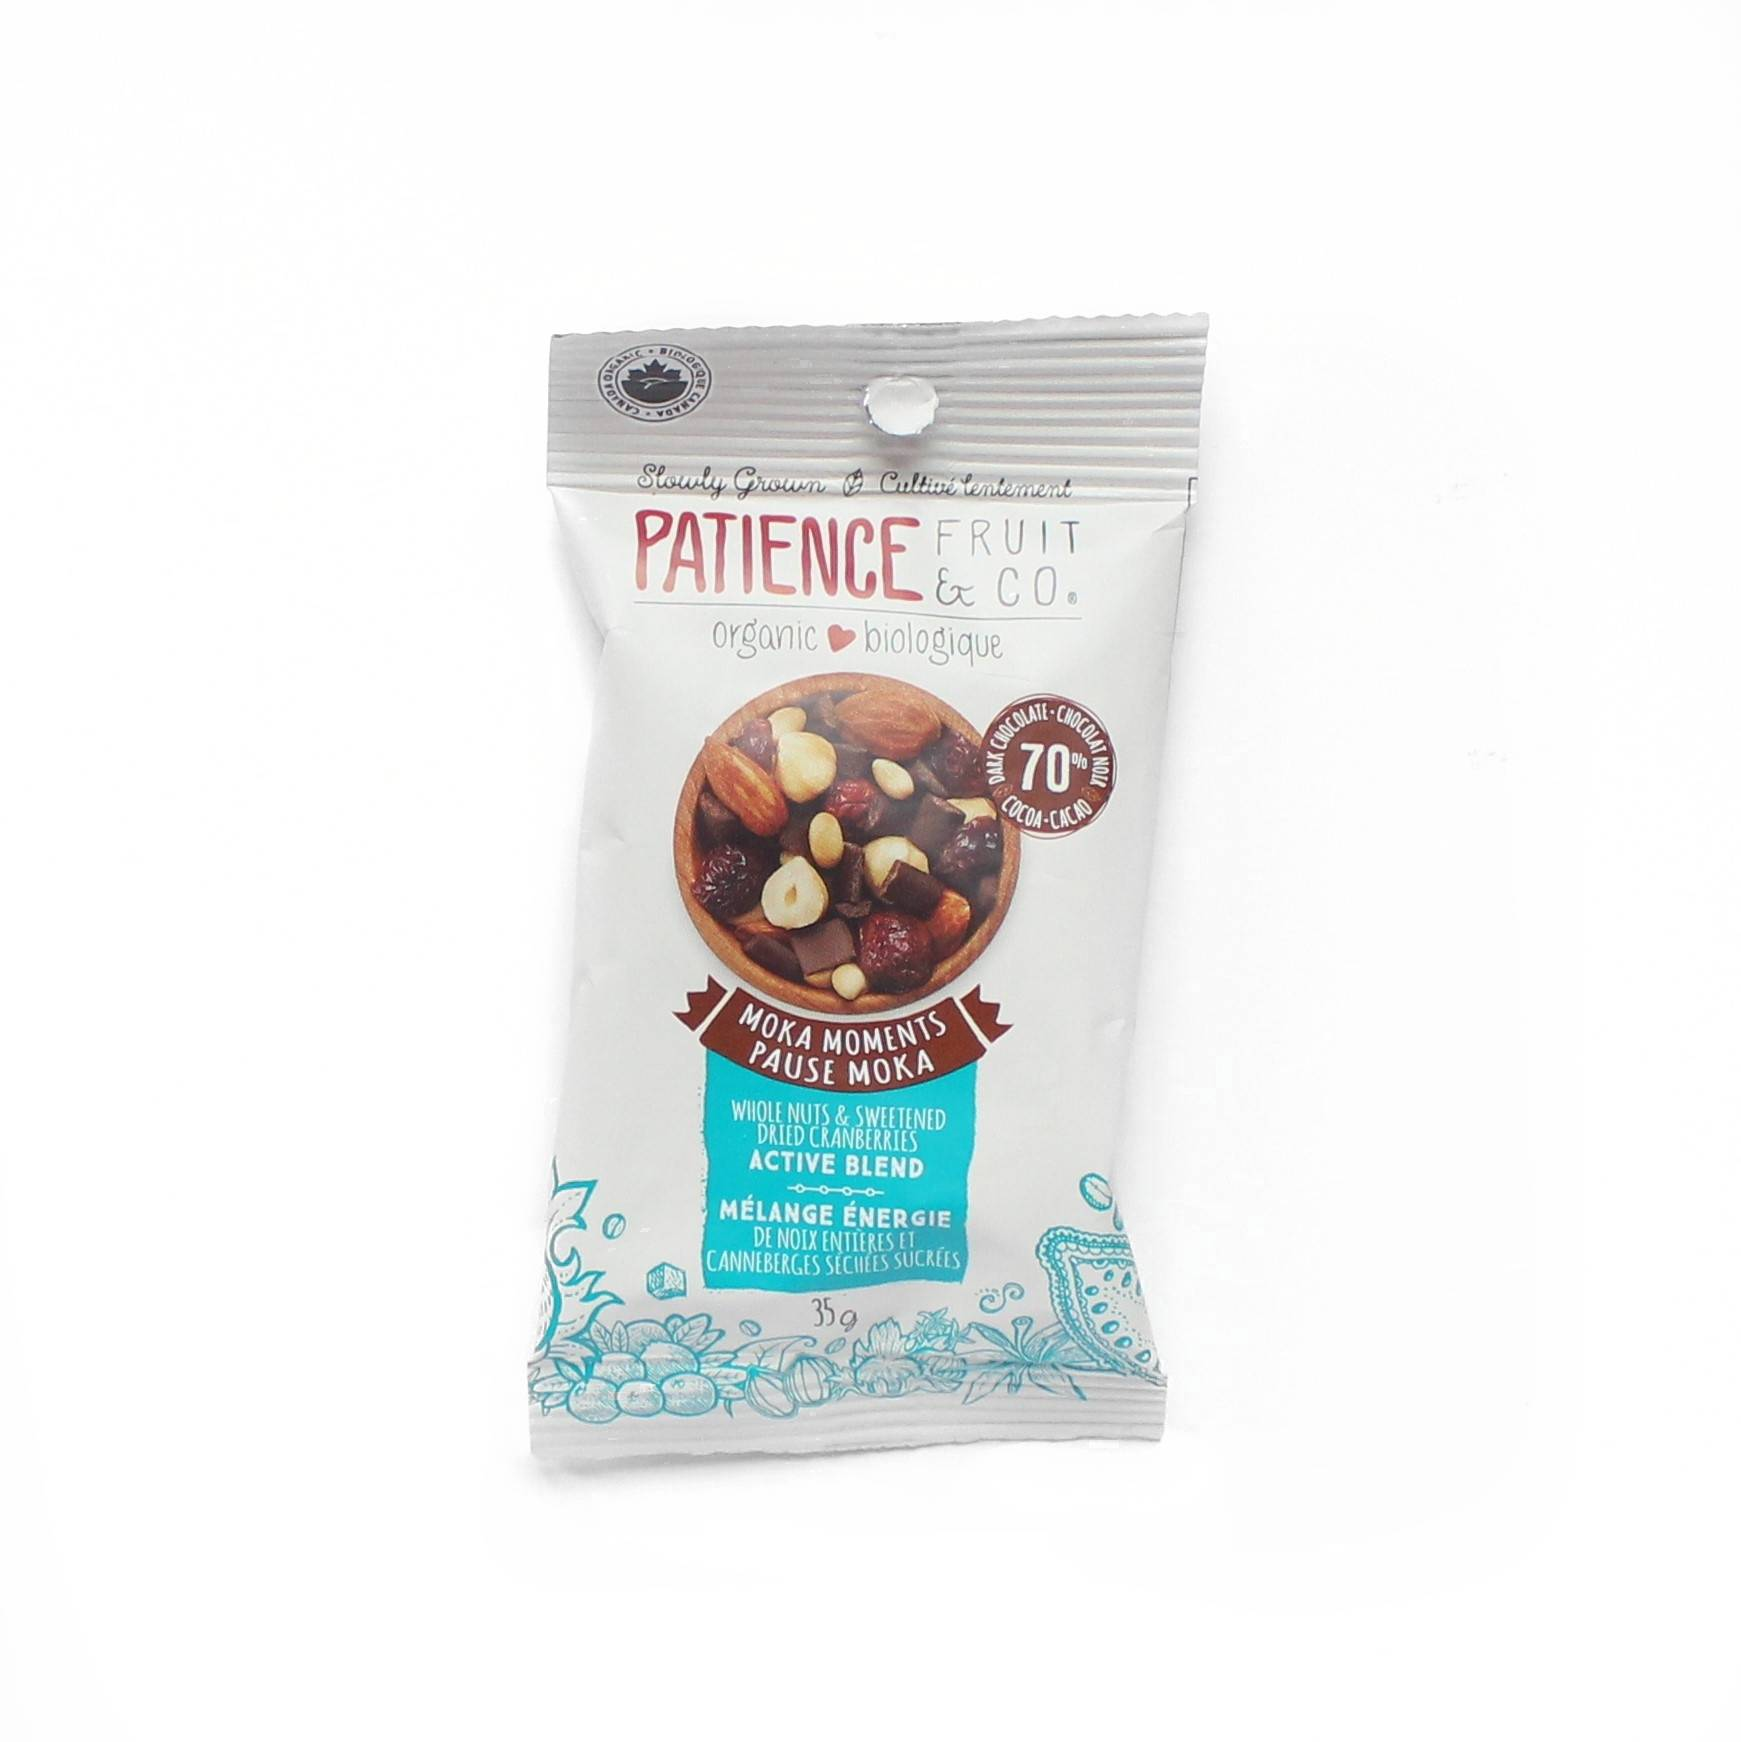 Patience fruit co mélange pause moka